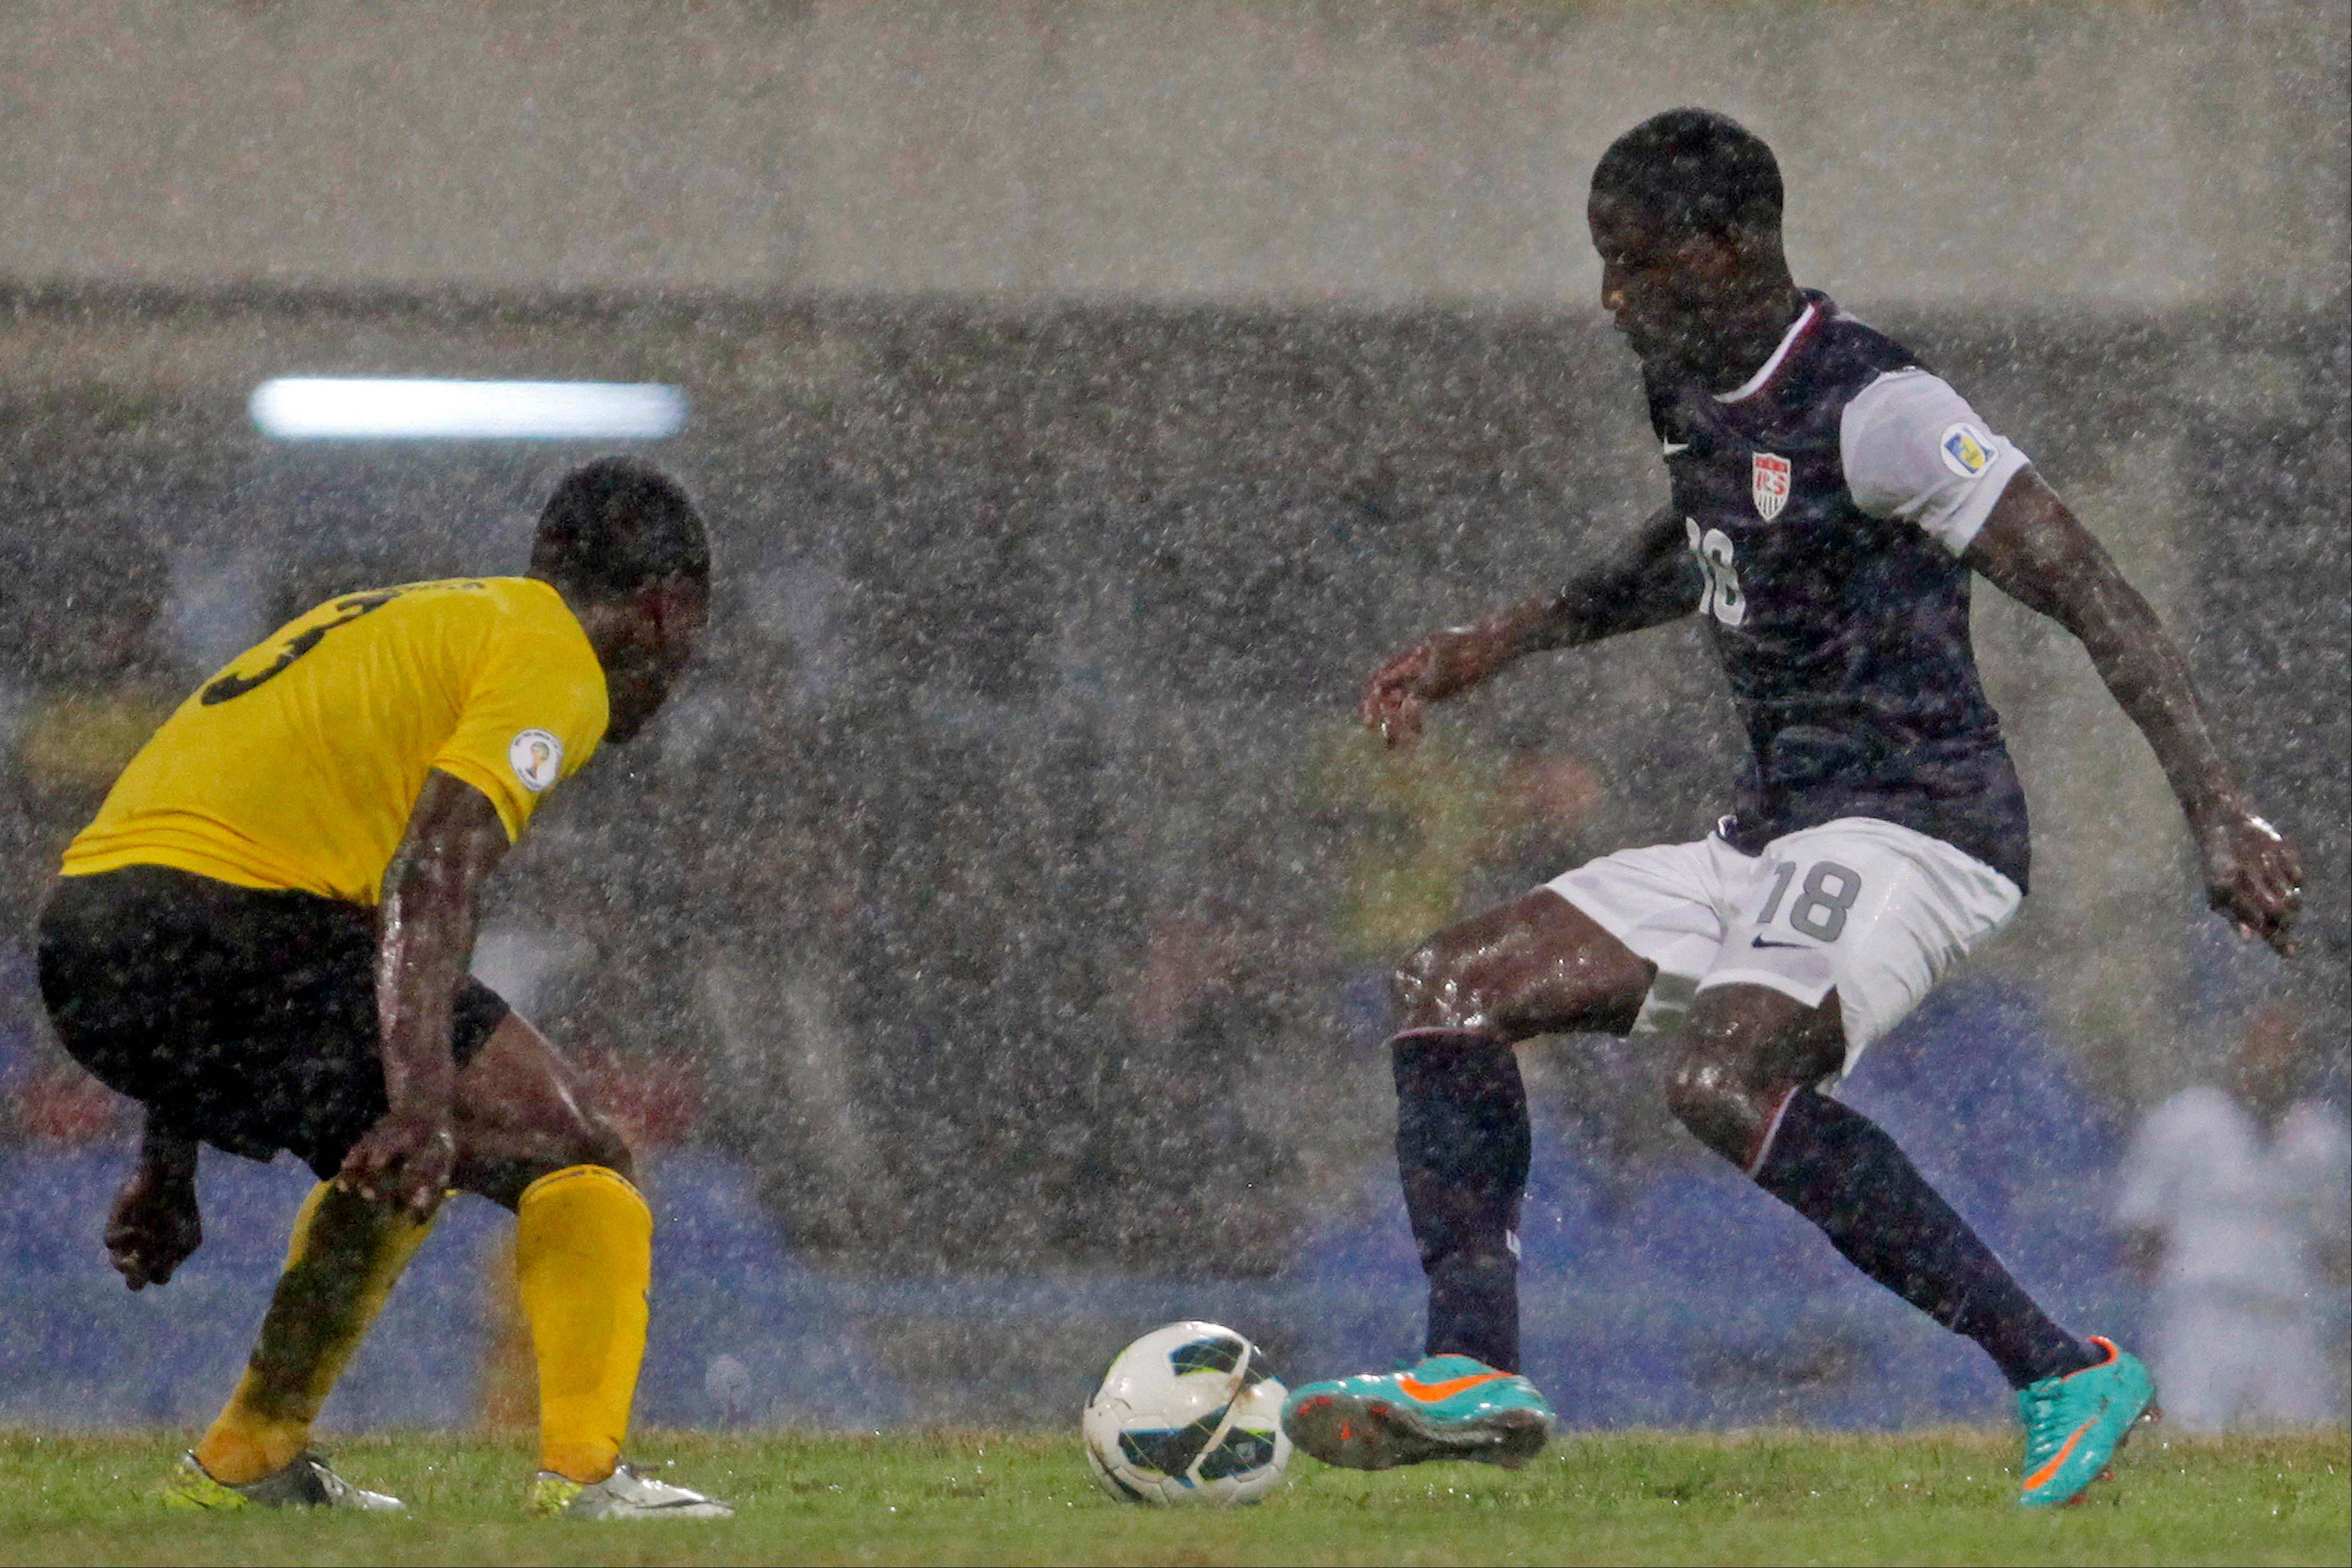 U.S. national team player Eddie Johnson, right, challenges Antigua and Barbuda's Zaine Sebastian Francis-Angol Friday during a 2014 World Cup qualifying soccer match in St. John, Antigua and Barbuda.